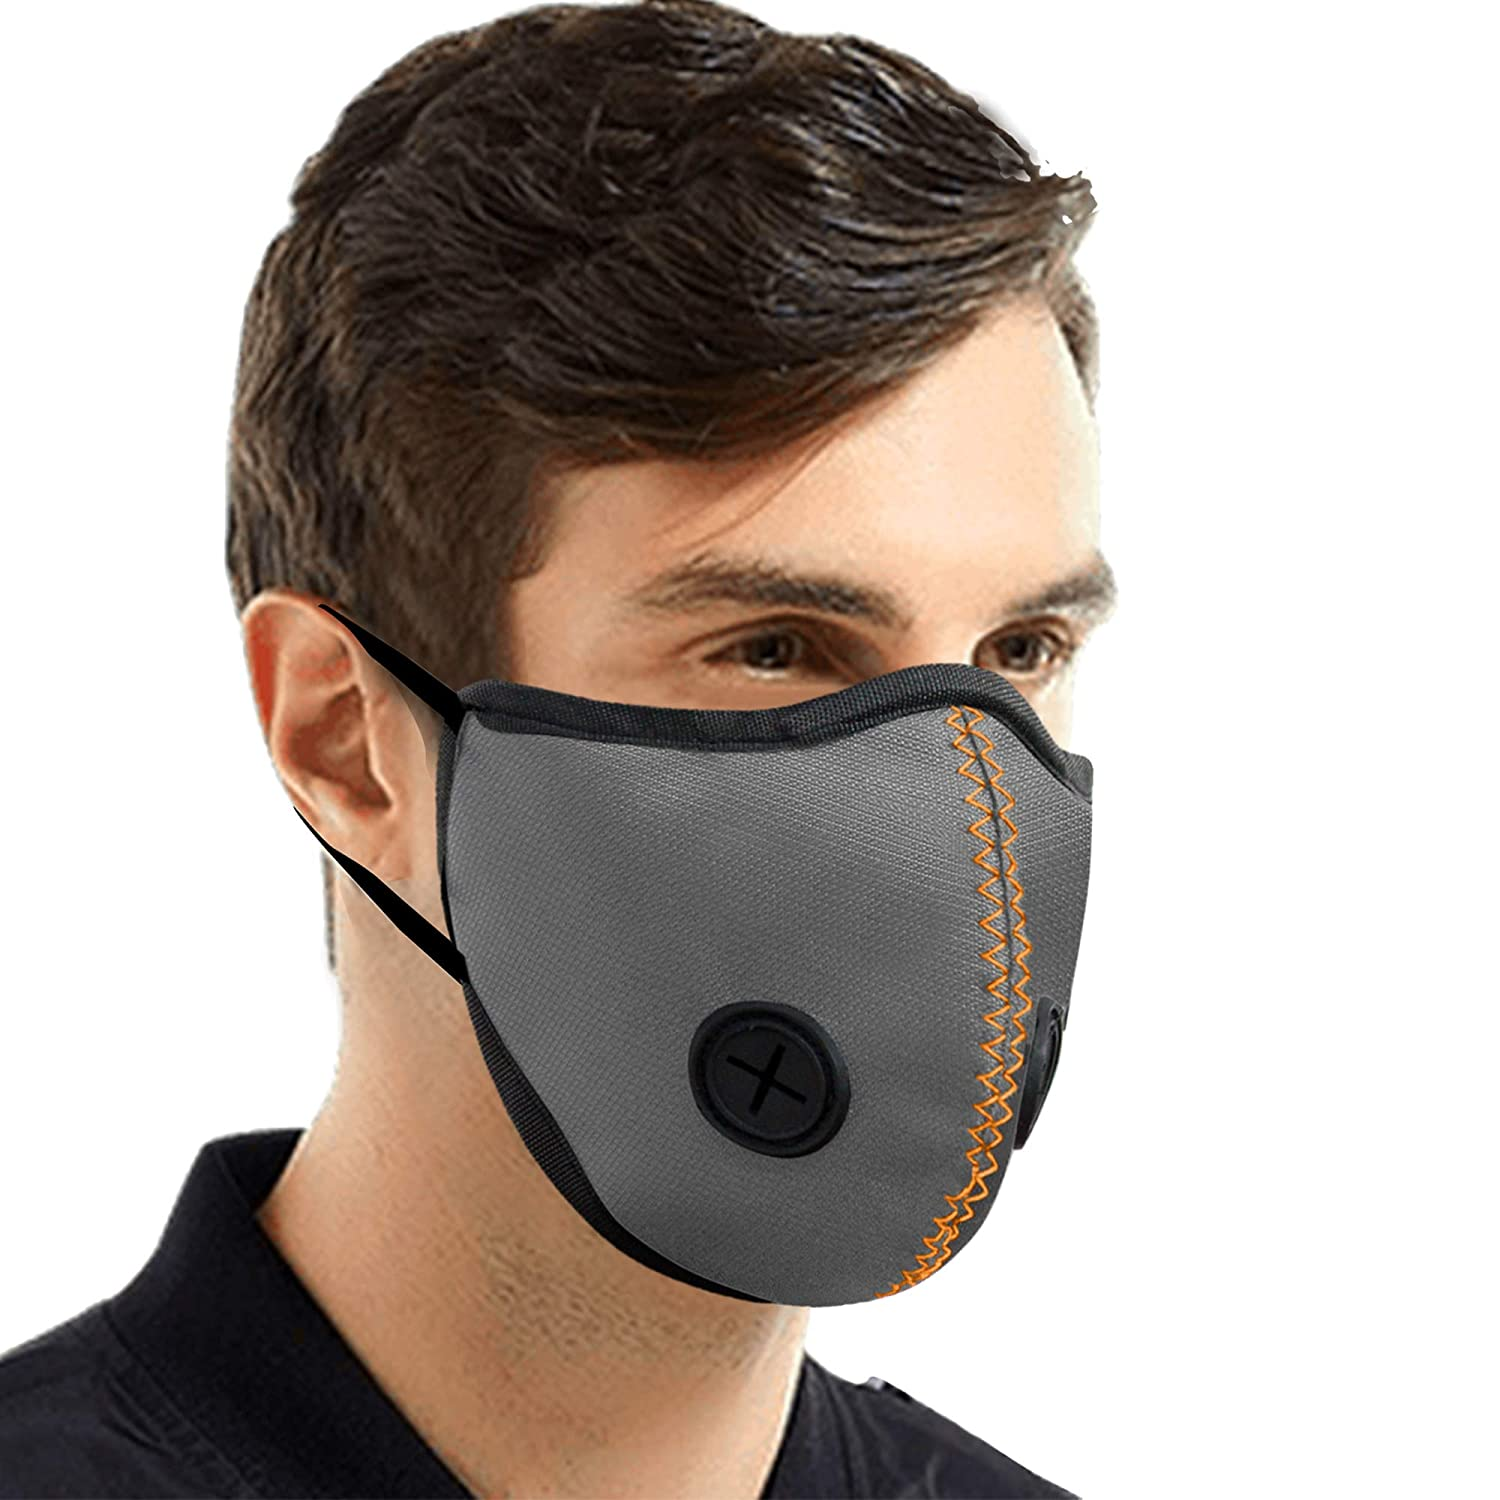 Anti-Pollution Anti-Dust High Grade Riding Mask